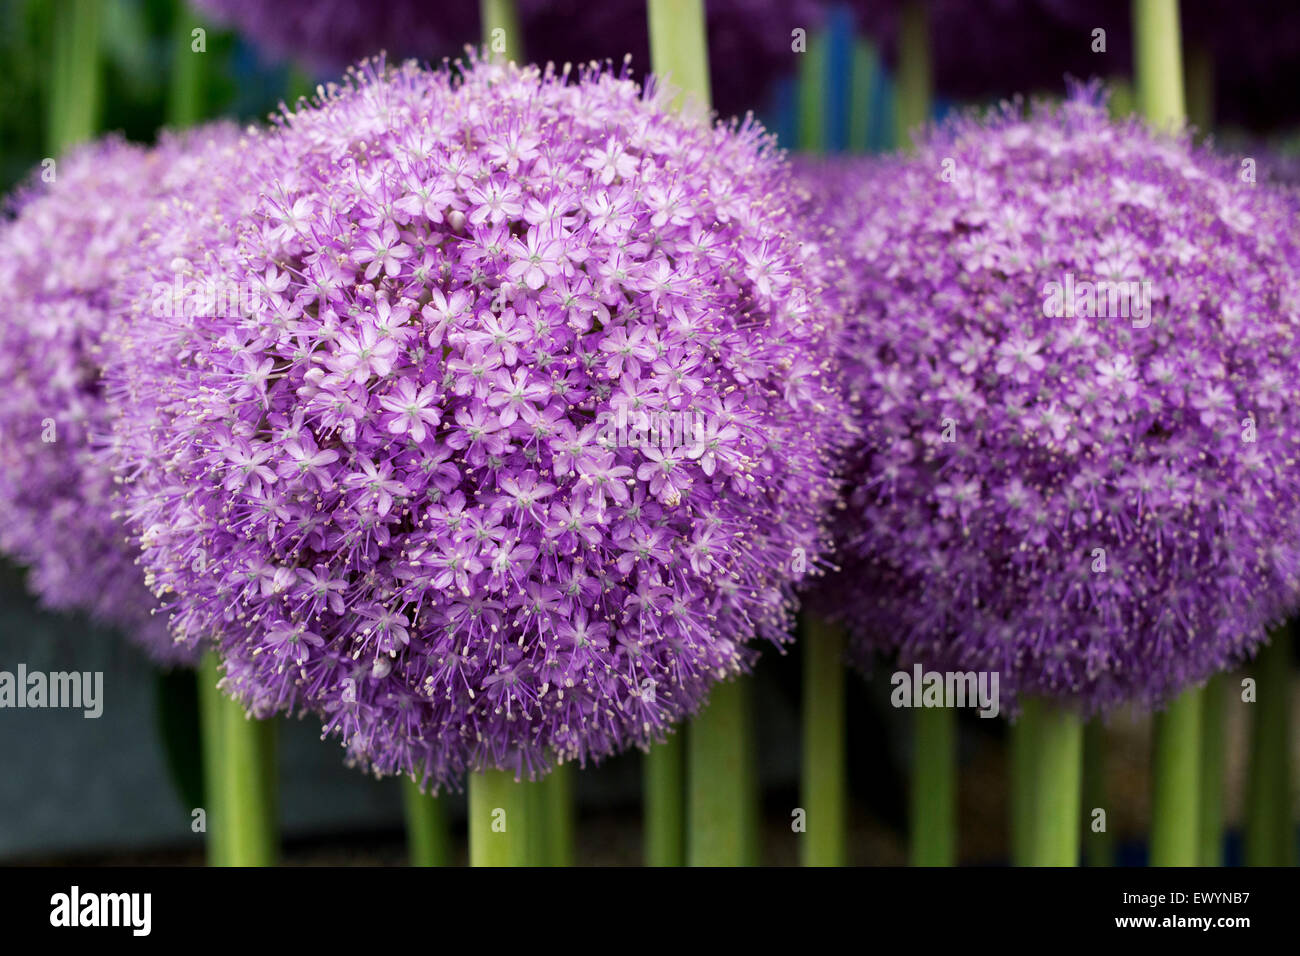 Gold medal winning Alliums on display at the RHS Hampton Court Flower Show 2015 - Stock Image